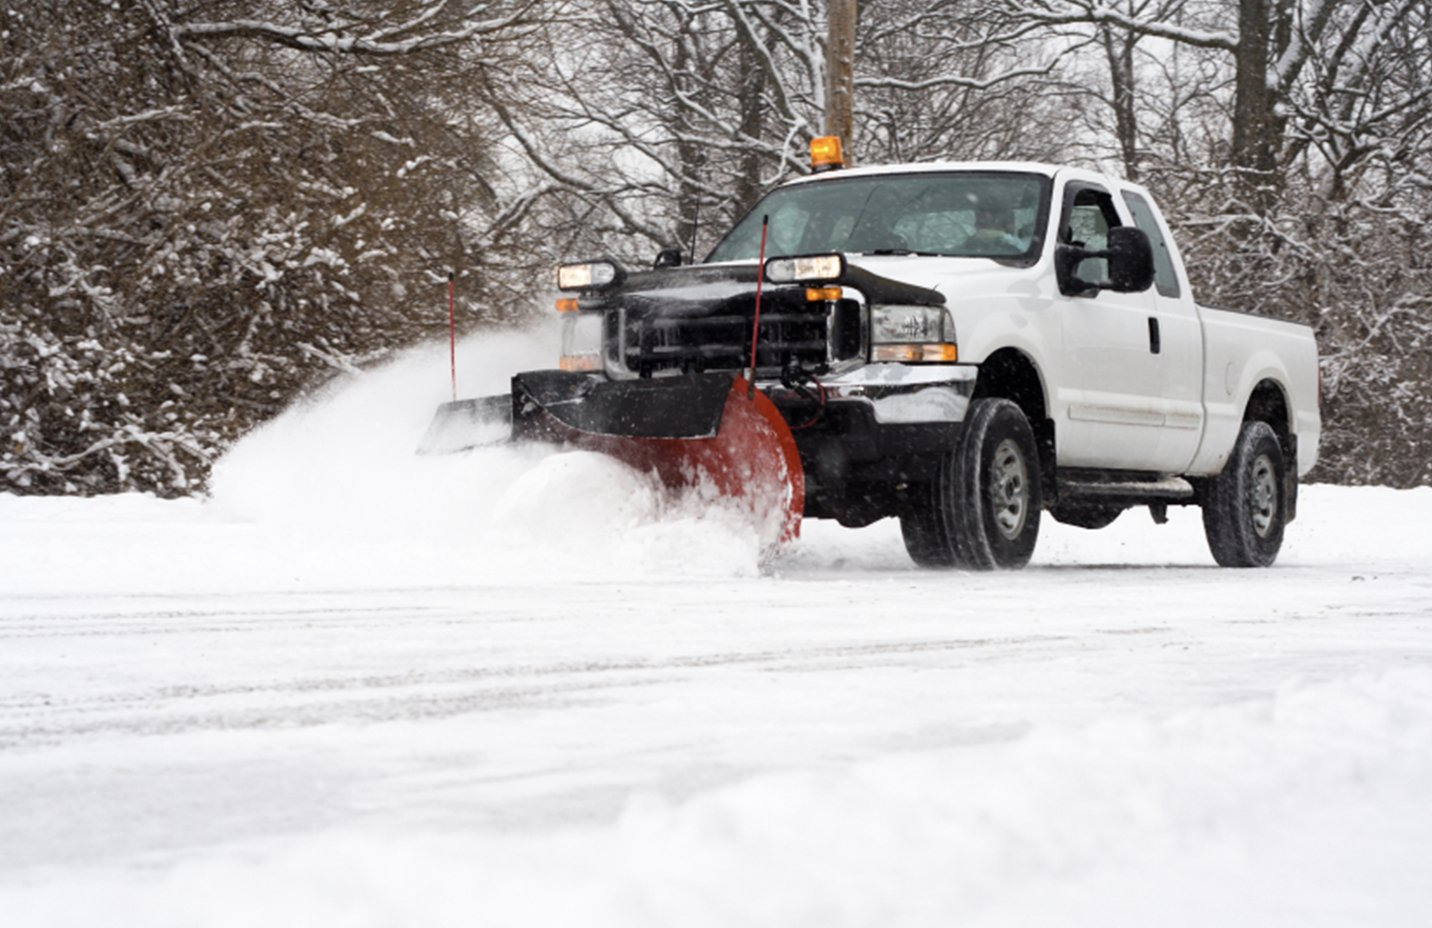 white ford truck removing snow with a front end plow